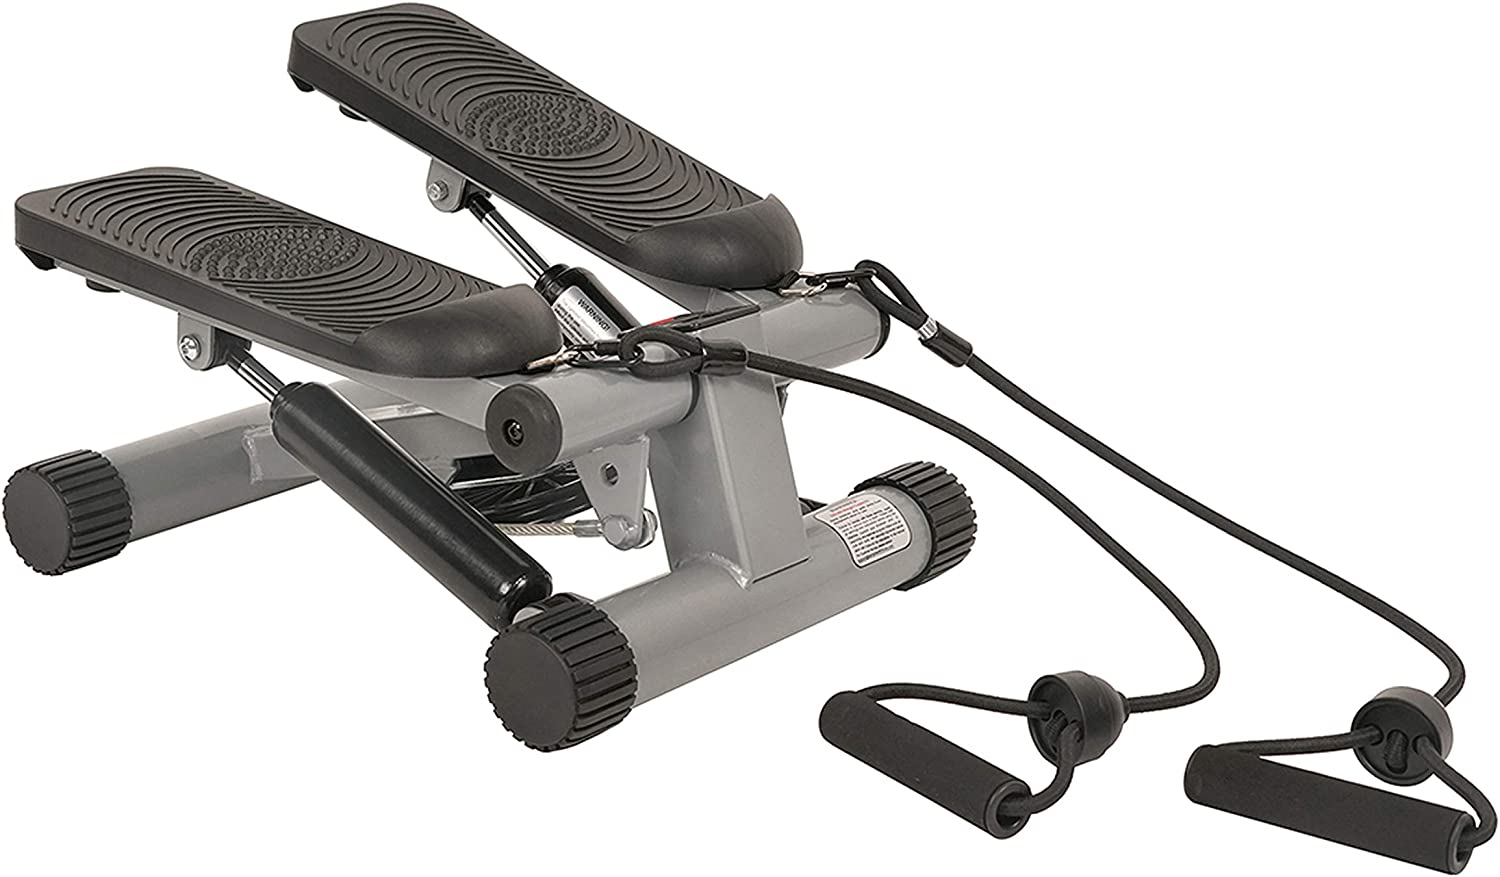 Visual of the mini stair stepper with resistance bands.